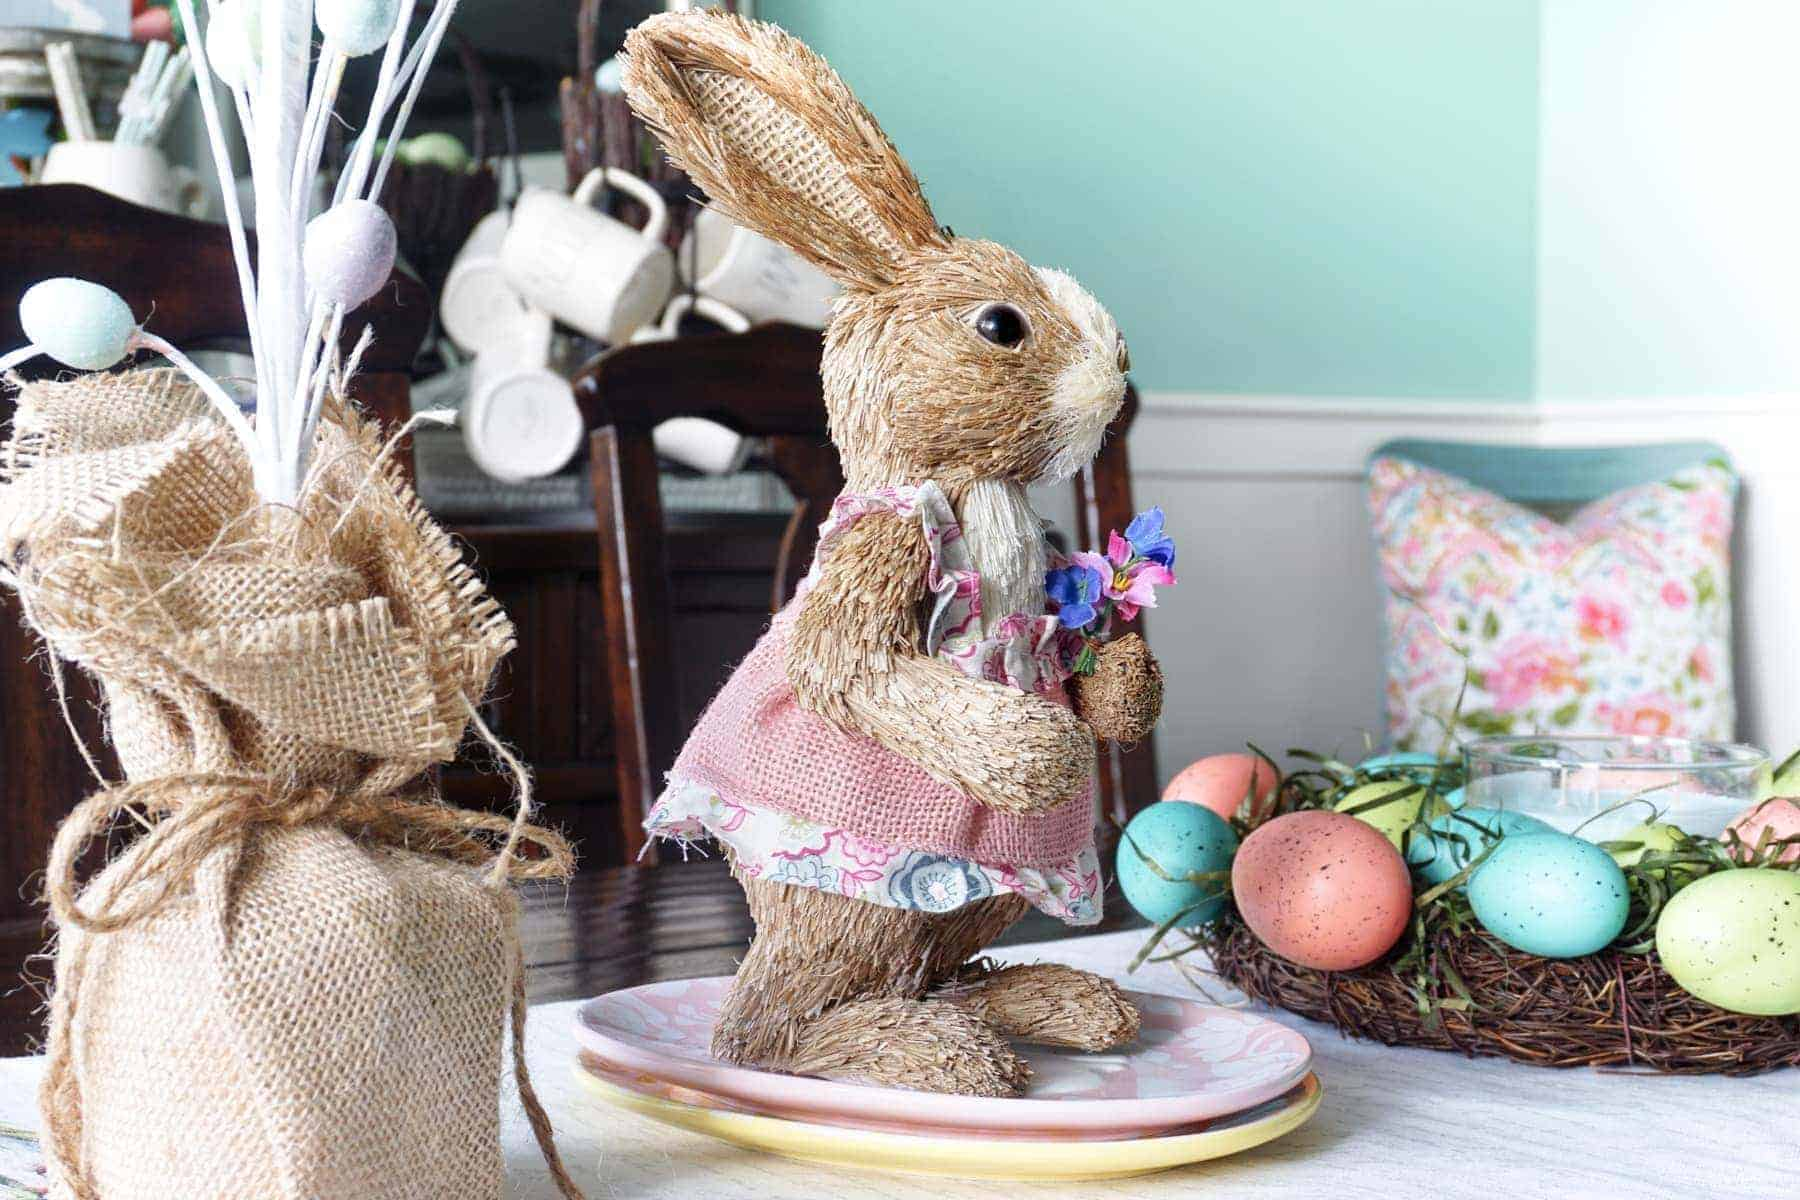 Cute Bunny in Pink Dress Easter Decor